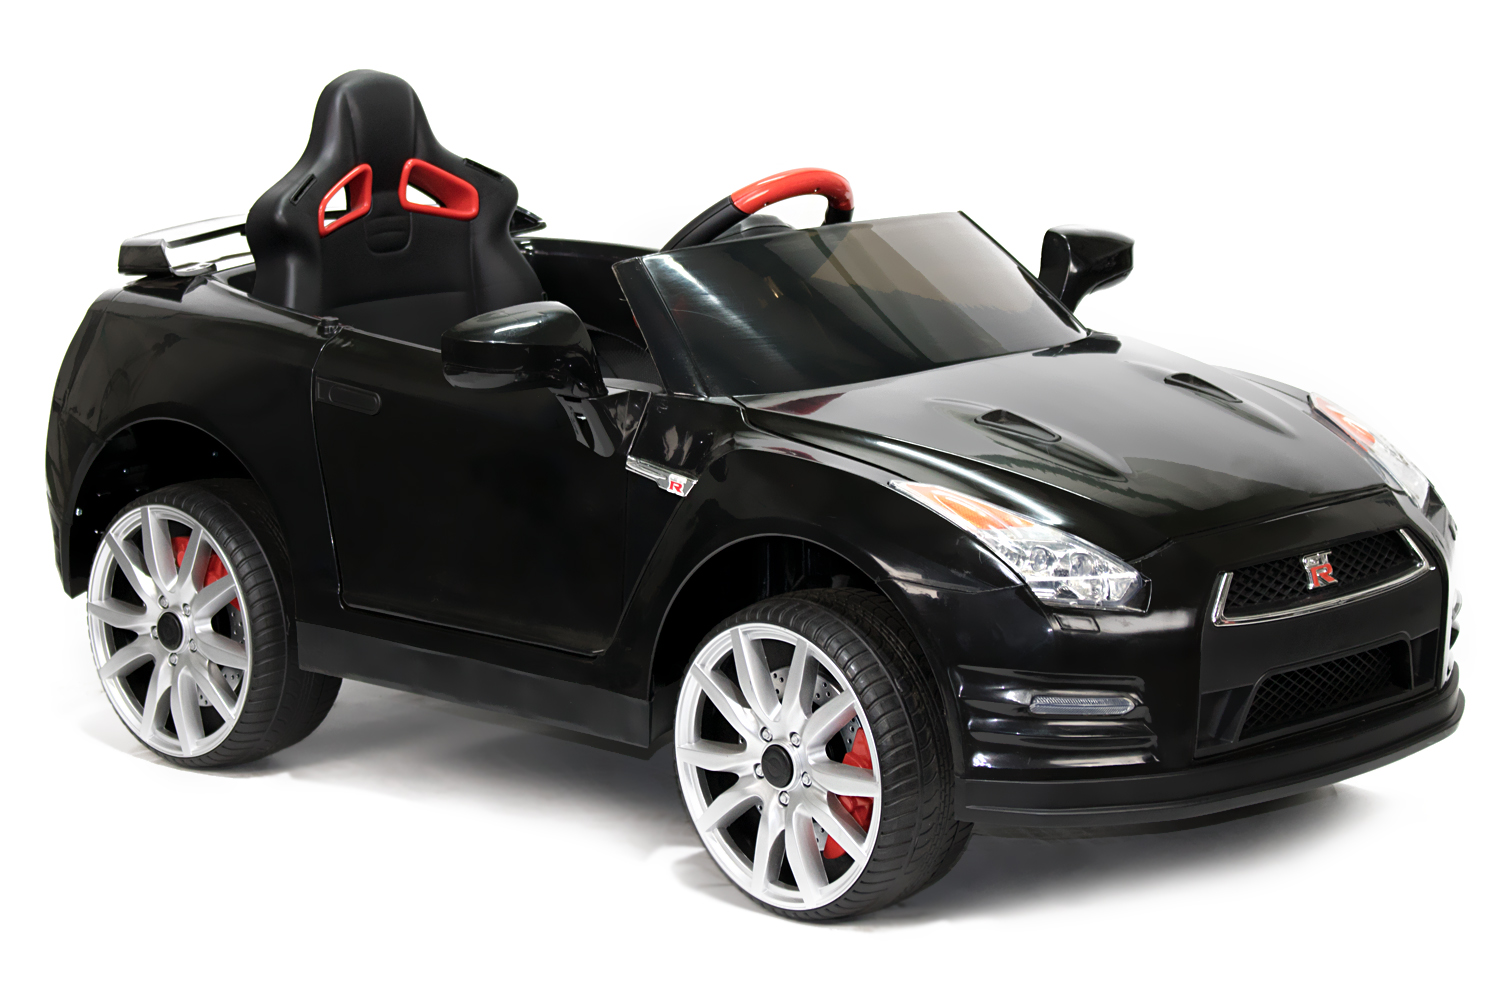 kidcars kinder elektroautos mit akku lizenz kinder elektro auto nissan gtr 2 x 35w mp3. Black Bedroom Furniture Sets. Home Design Ideas